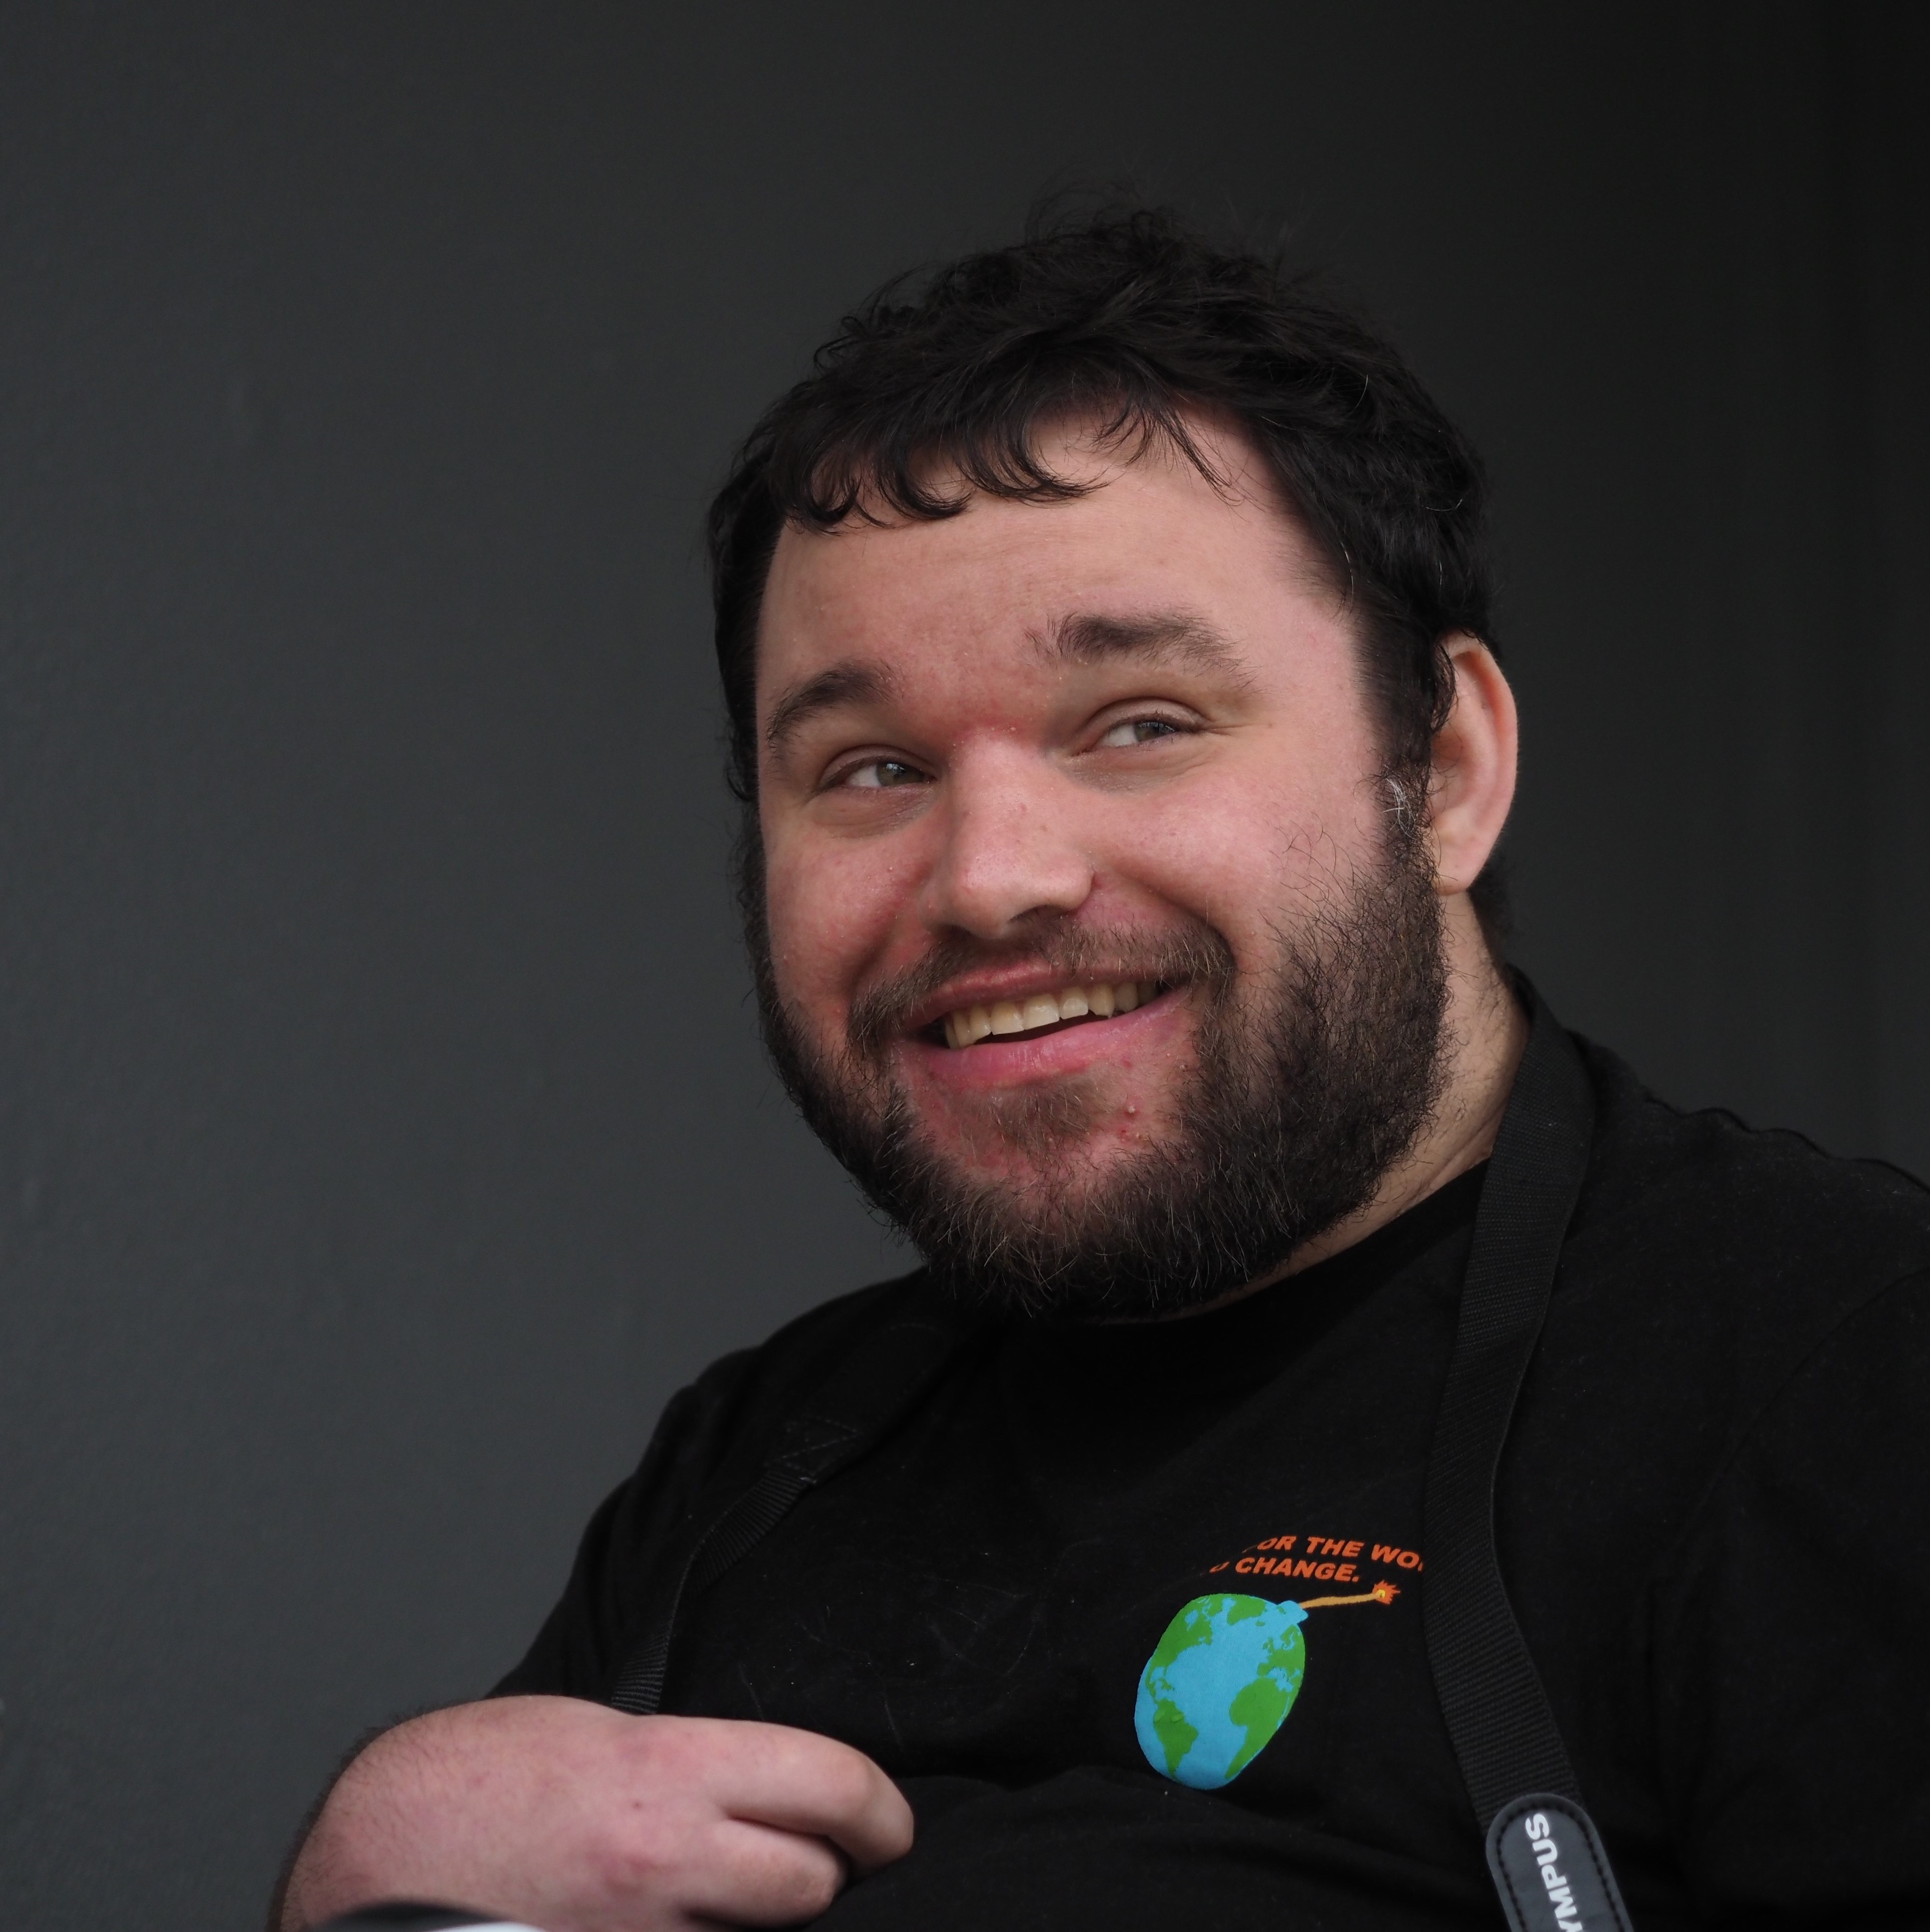 Image description: Jono glancing to his left and smiling in front of a black wall, his t-shirt has a logo that says 'waiting for the world to change',